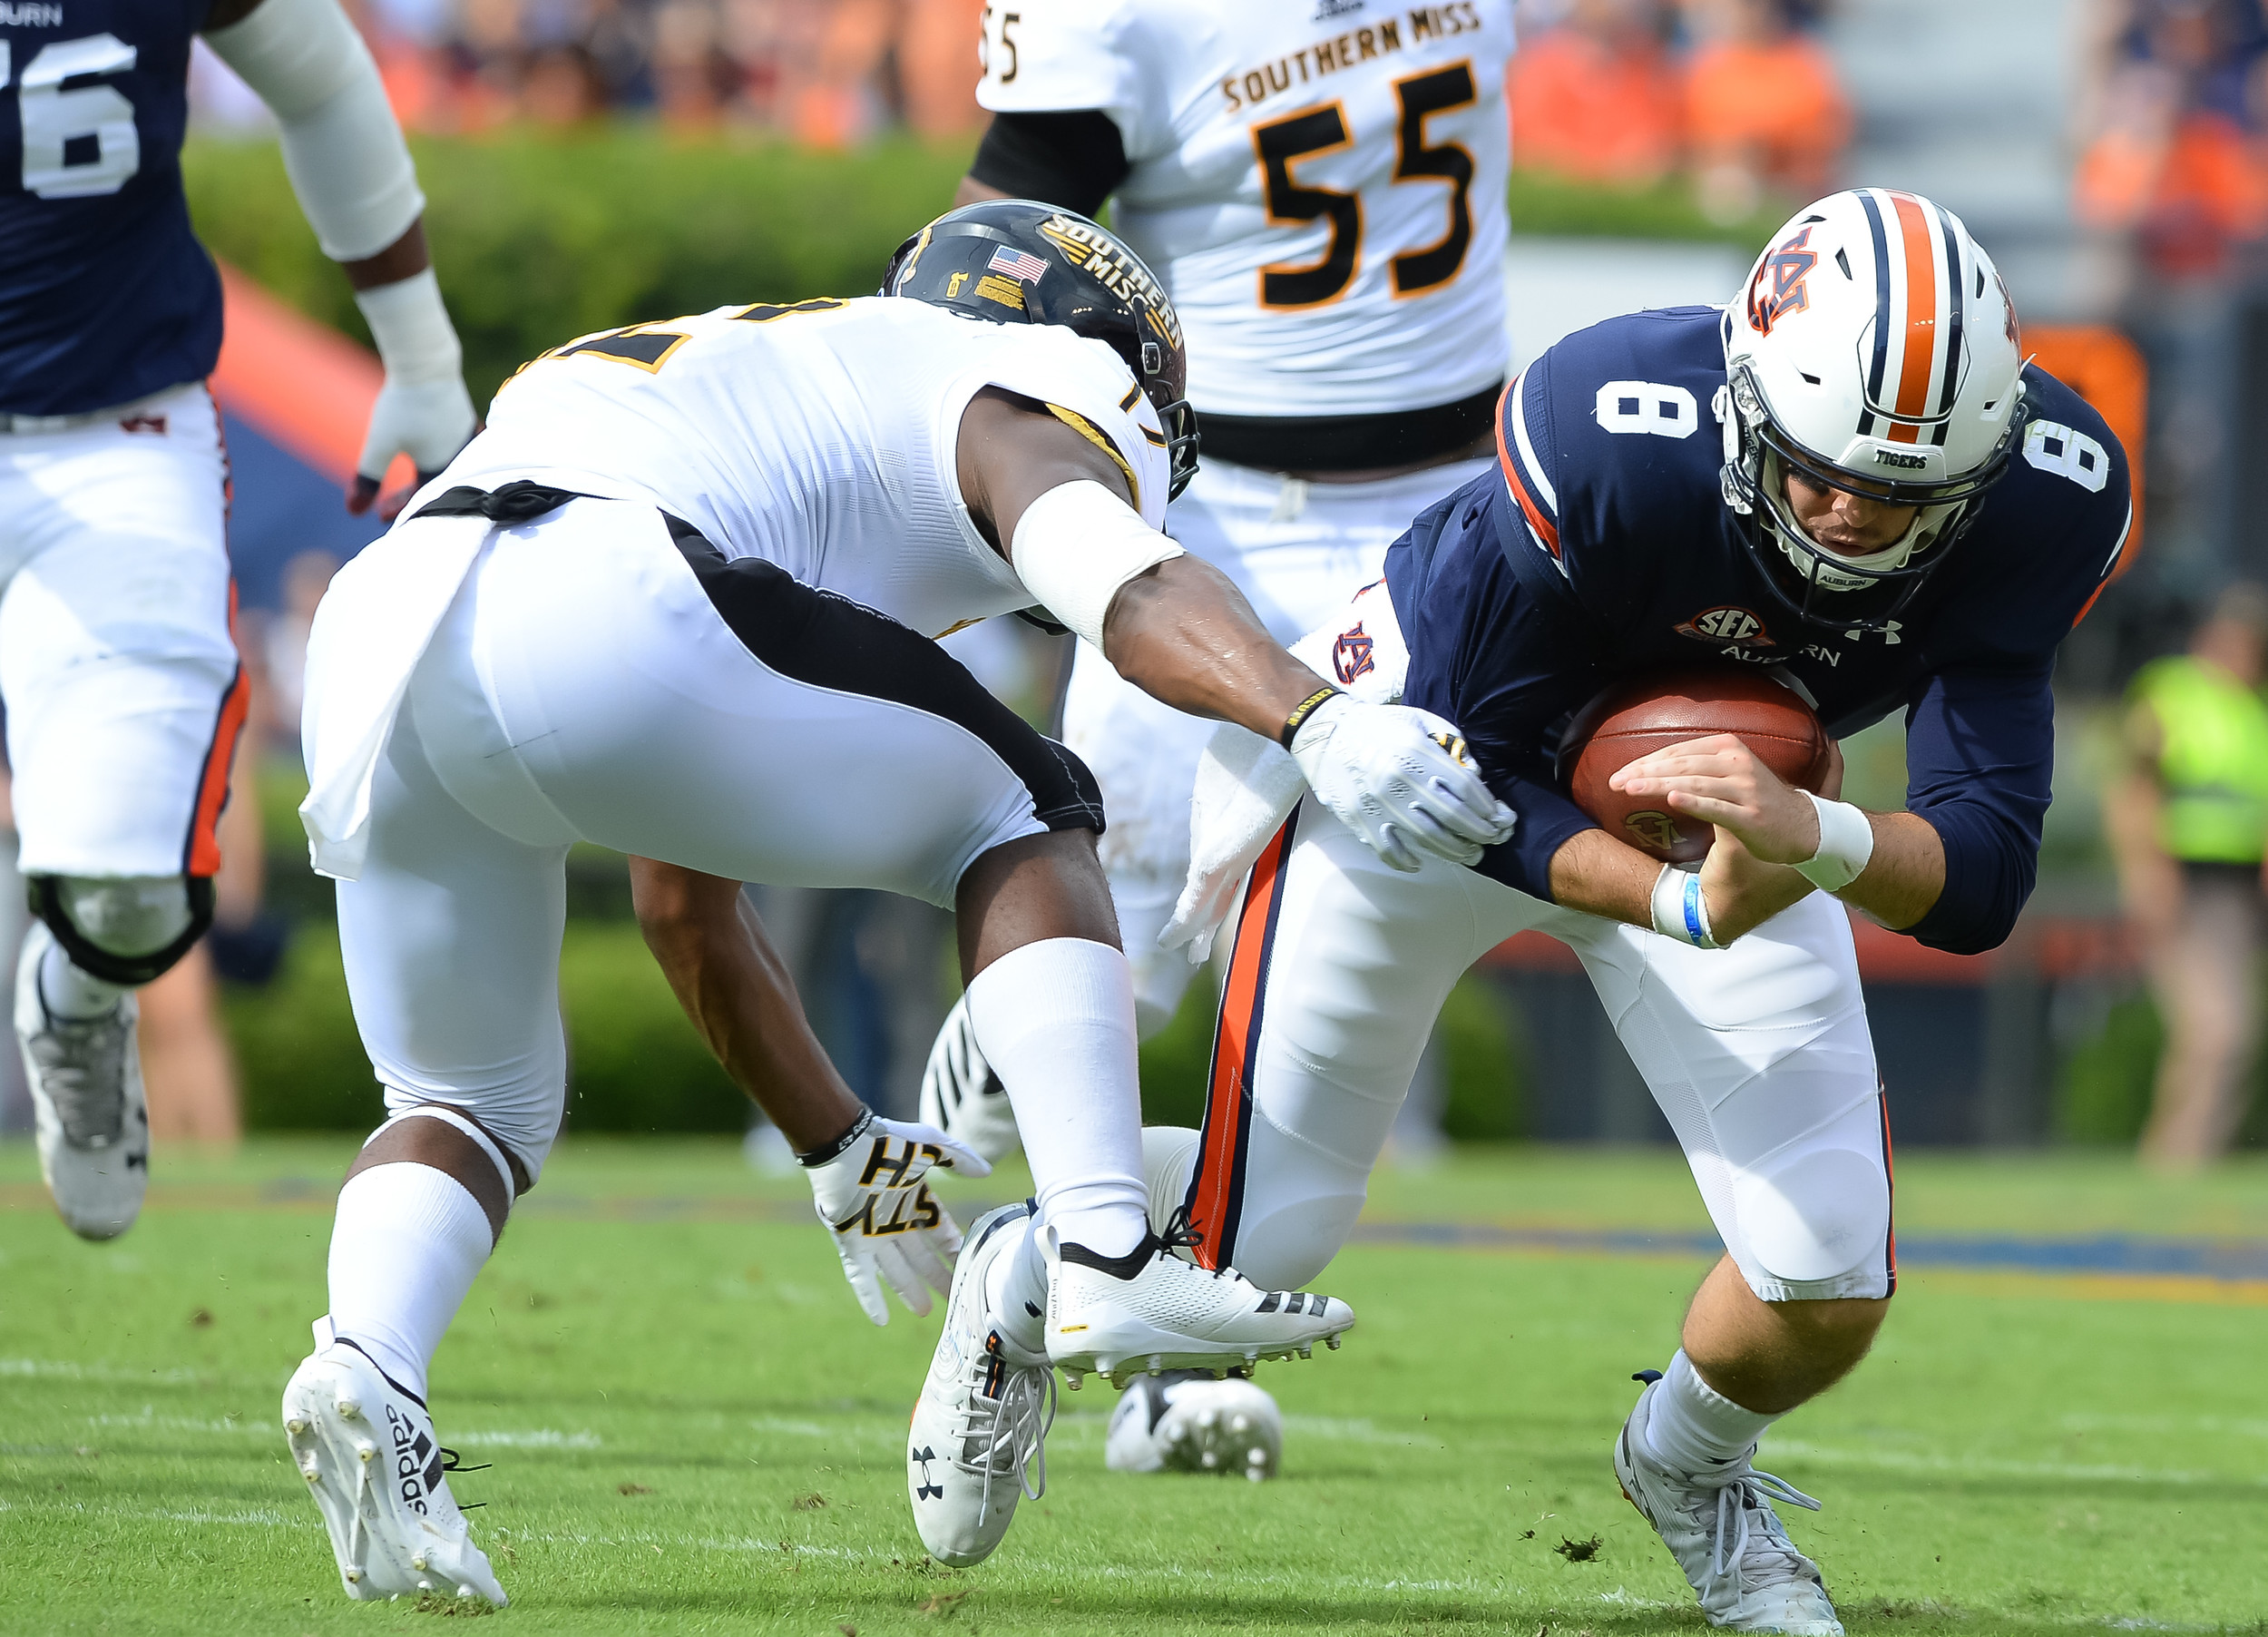 Auburn Tigers quarterback Jarrett Stidham (8) is tackled by Southern Miss Golden Eagles defensive back D.Q. Thomas (12) during the first half of Saturday's game, at Jordan Hare Stadium in Auburn AL. Daily Mountain Eagle -  Jeff Johnsey